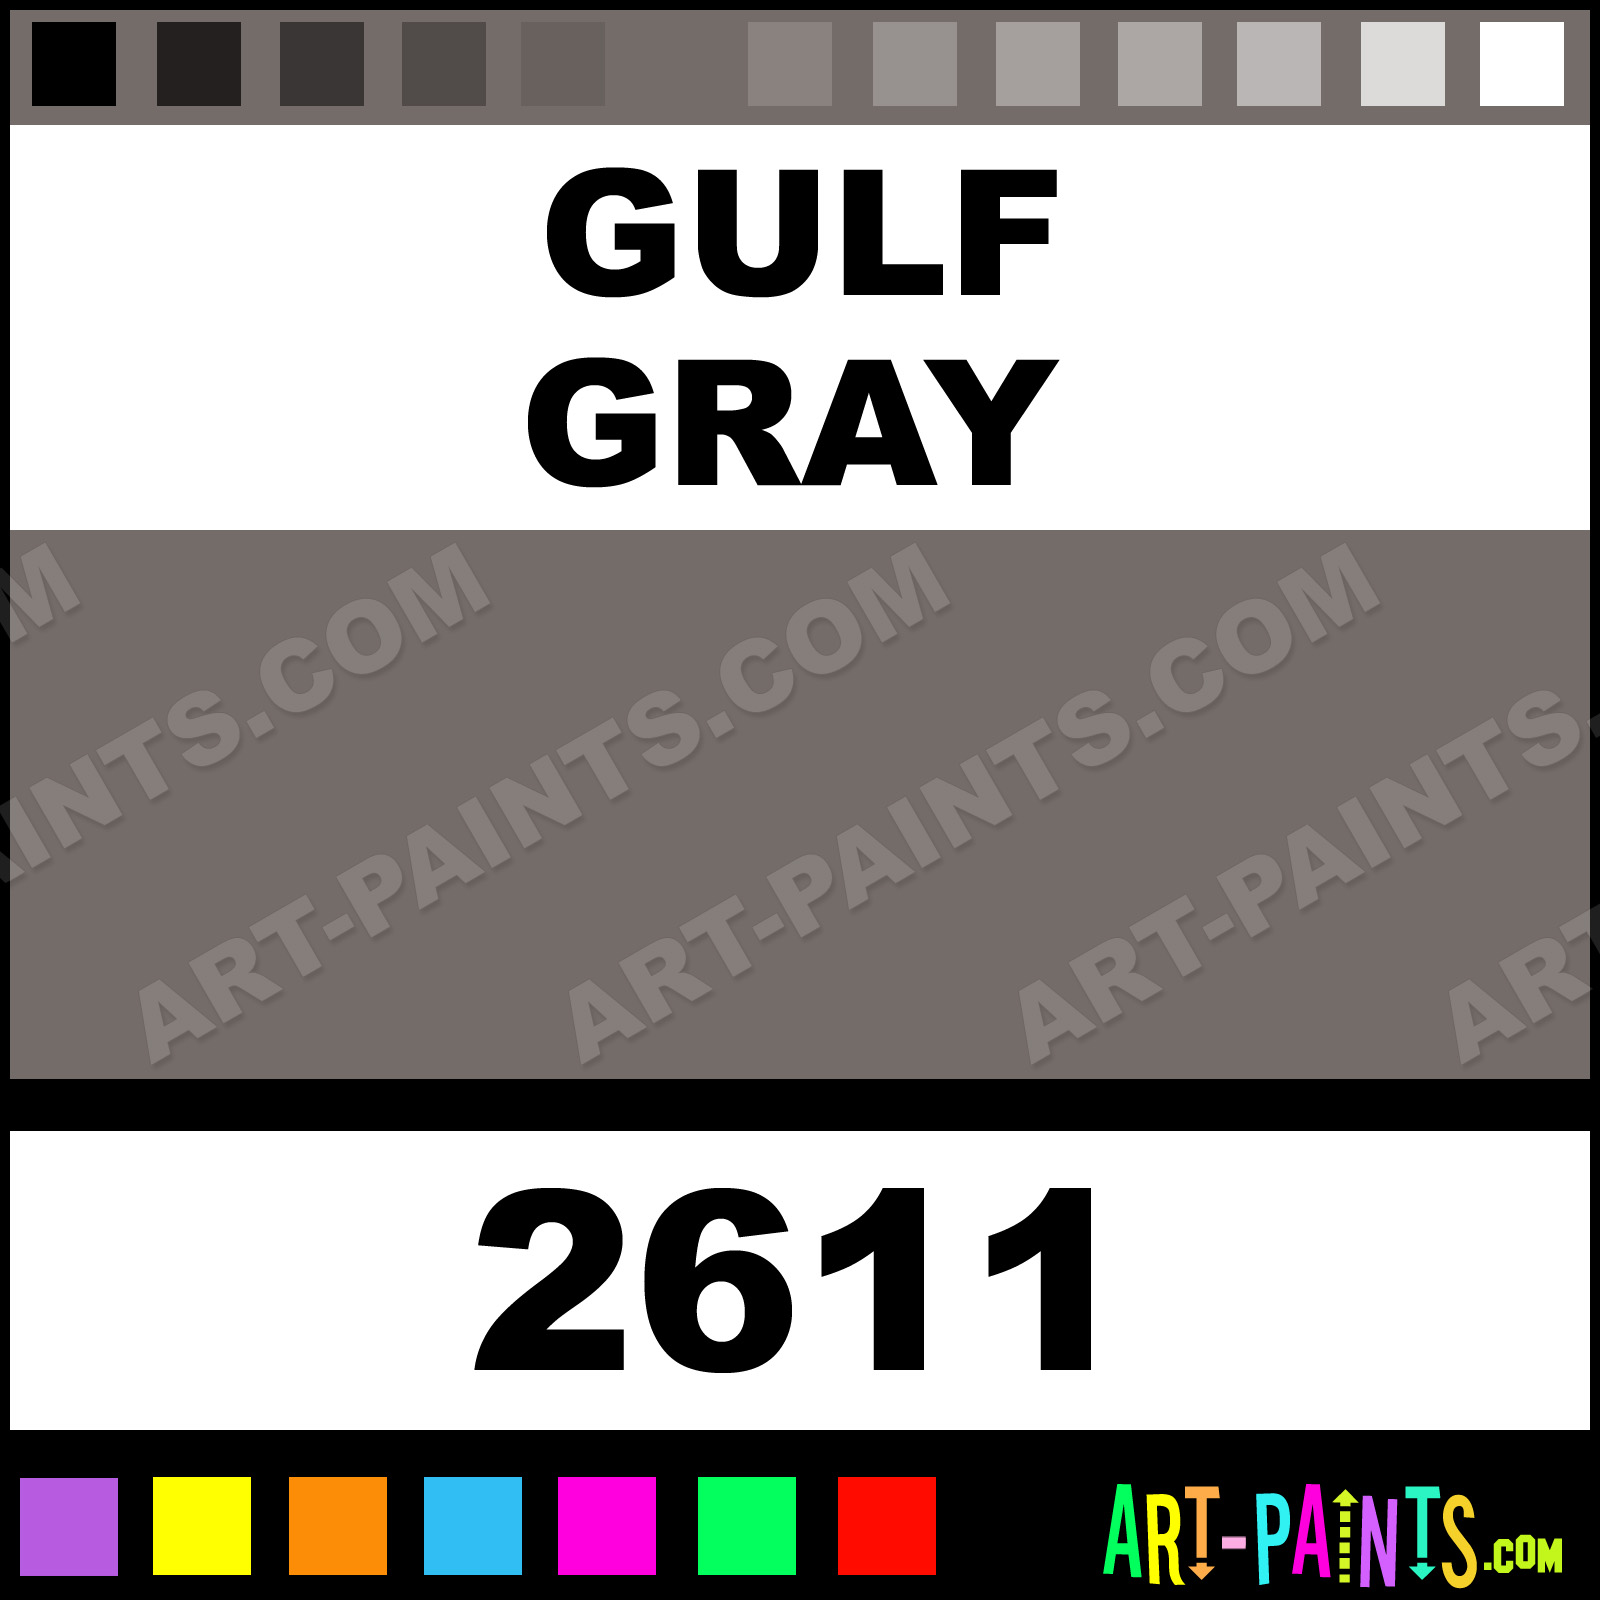 gulf gray h2o latex spray paints 2611 gulf gray paint. Black Bedroom Furniture Sets. Home Design Ideas